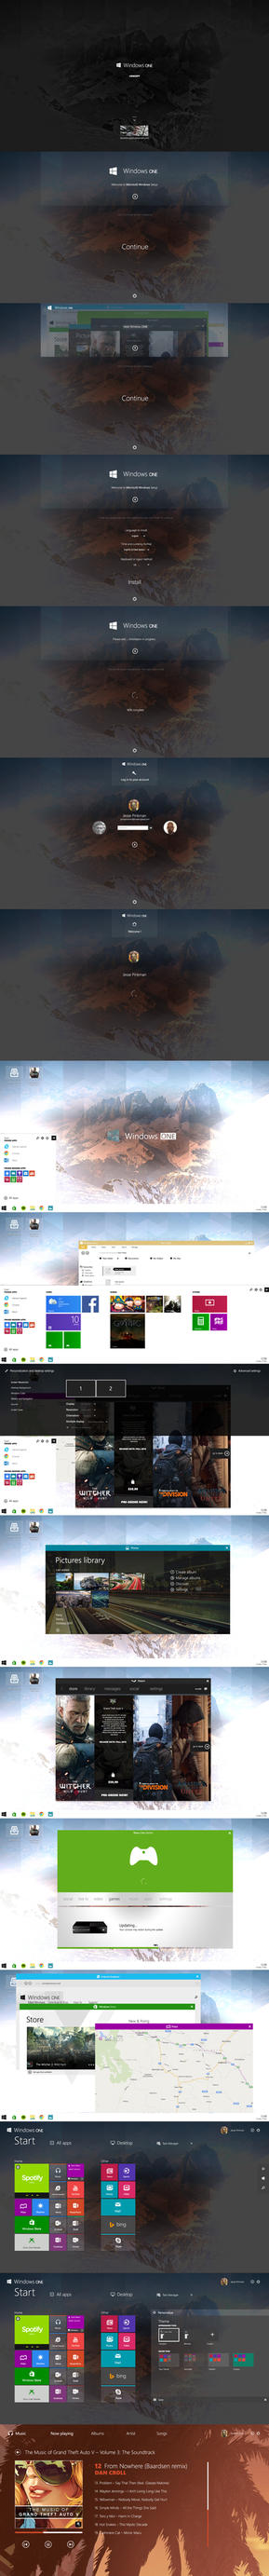 [NEW Concept] Windows ONE by danielskrzypon